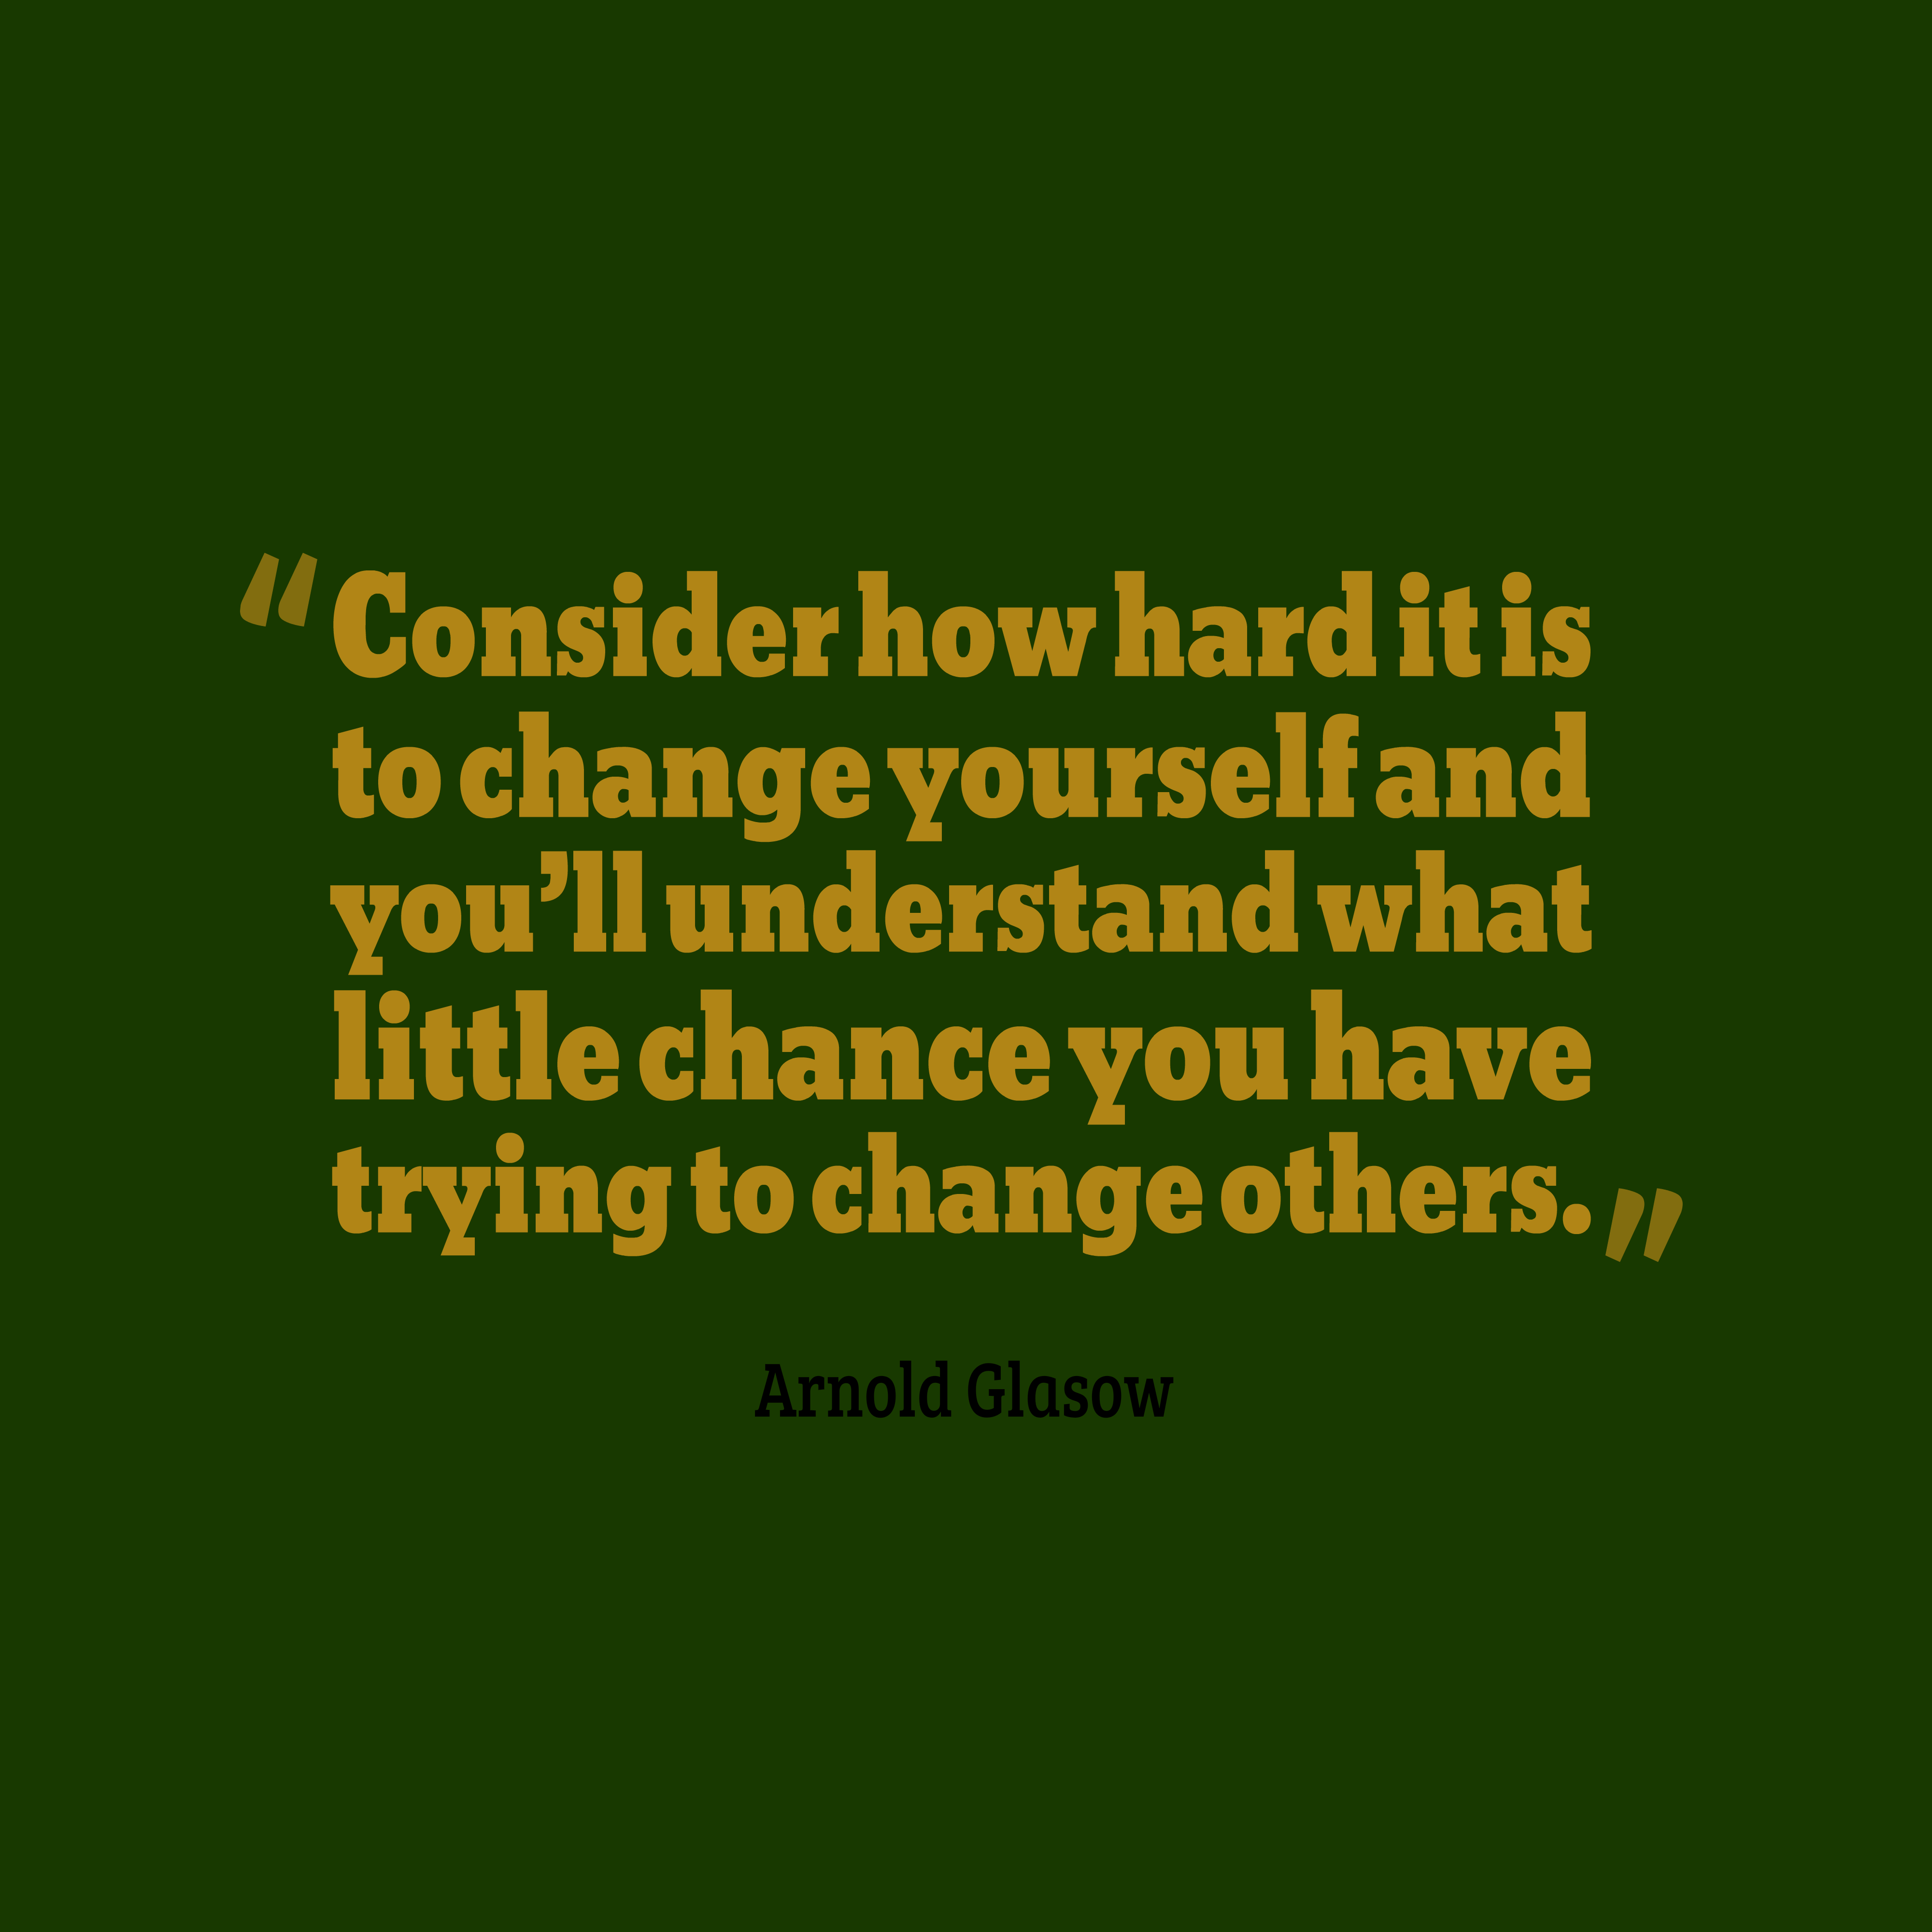 Quotes image of Consider how hard it is to change yourself and you'll understand what little chance you have trying to change others.